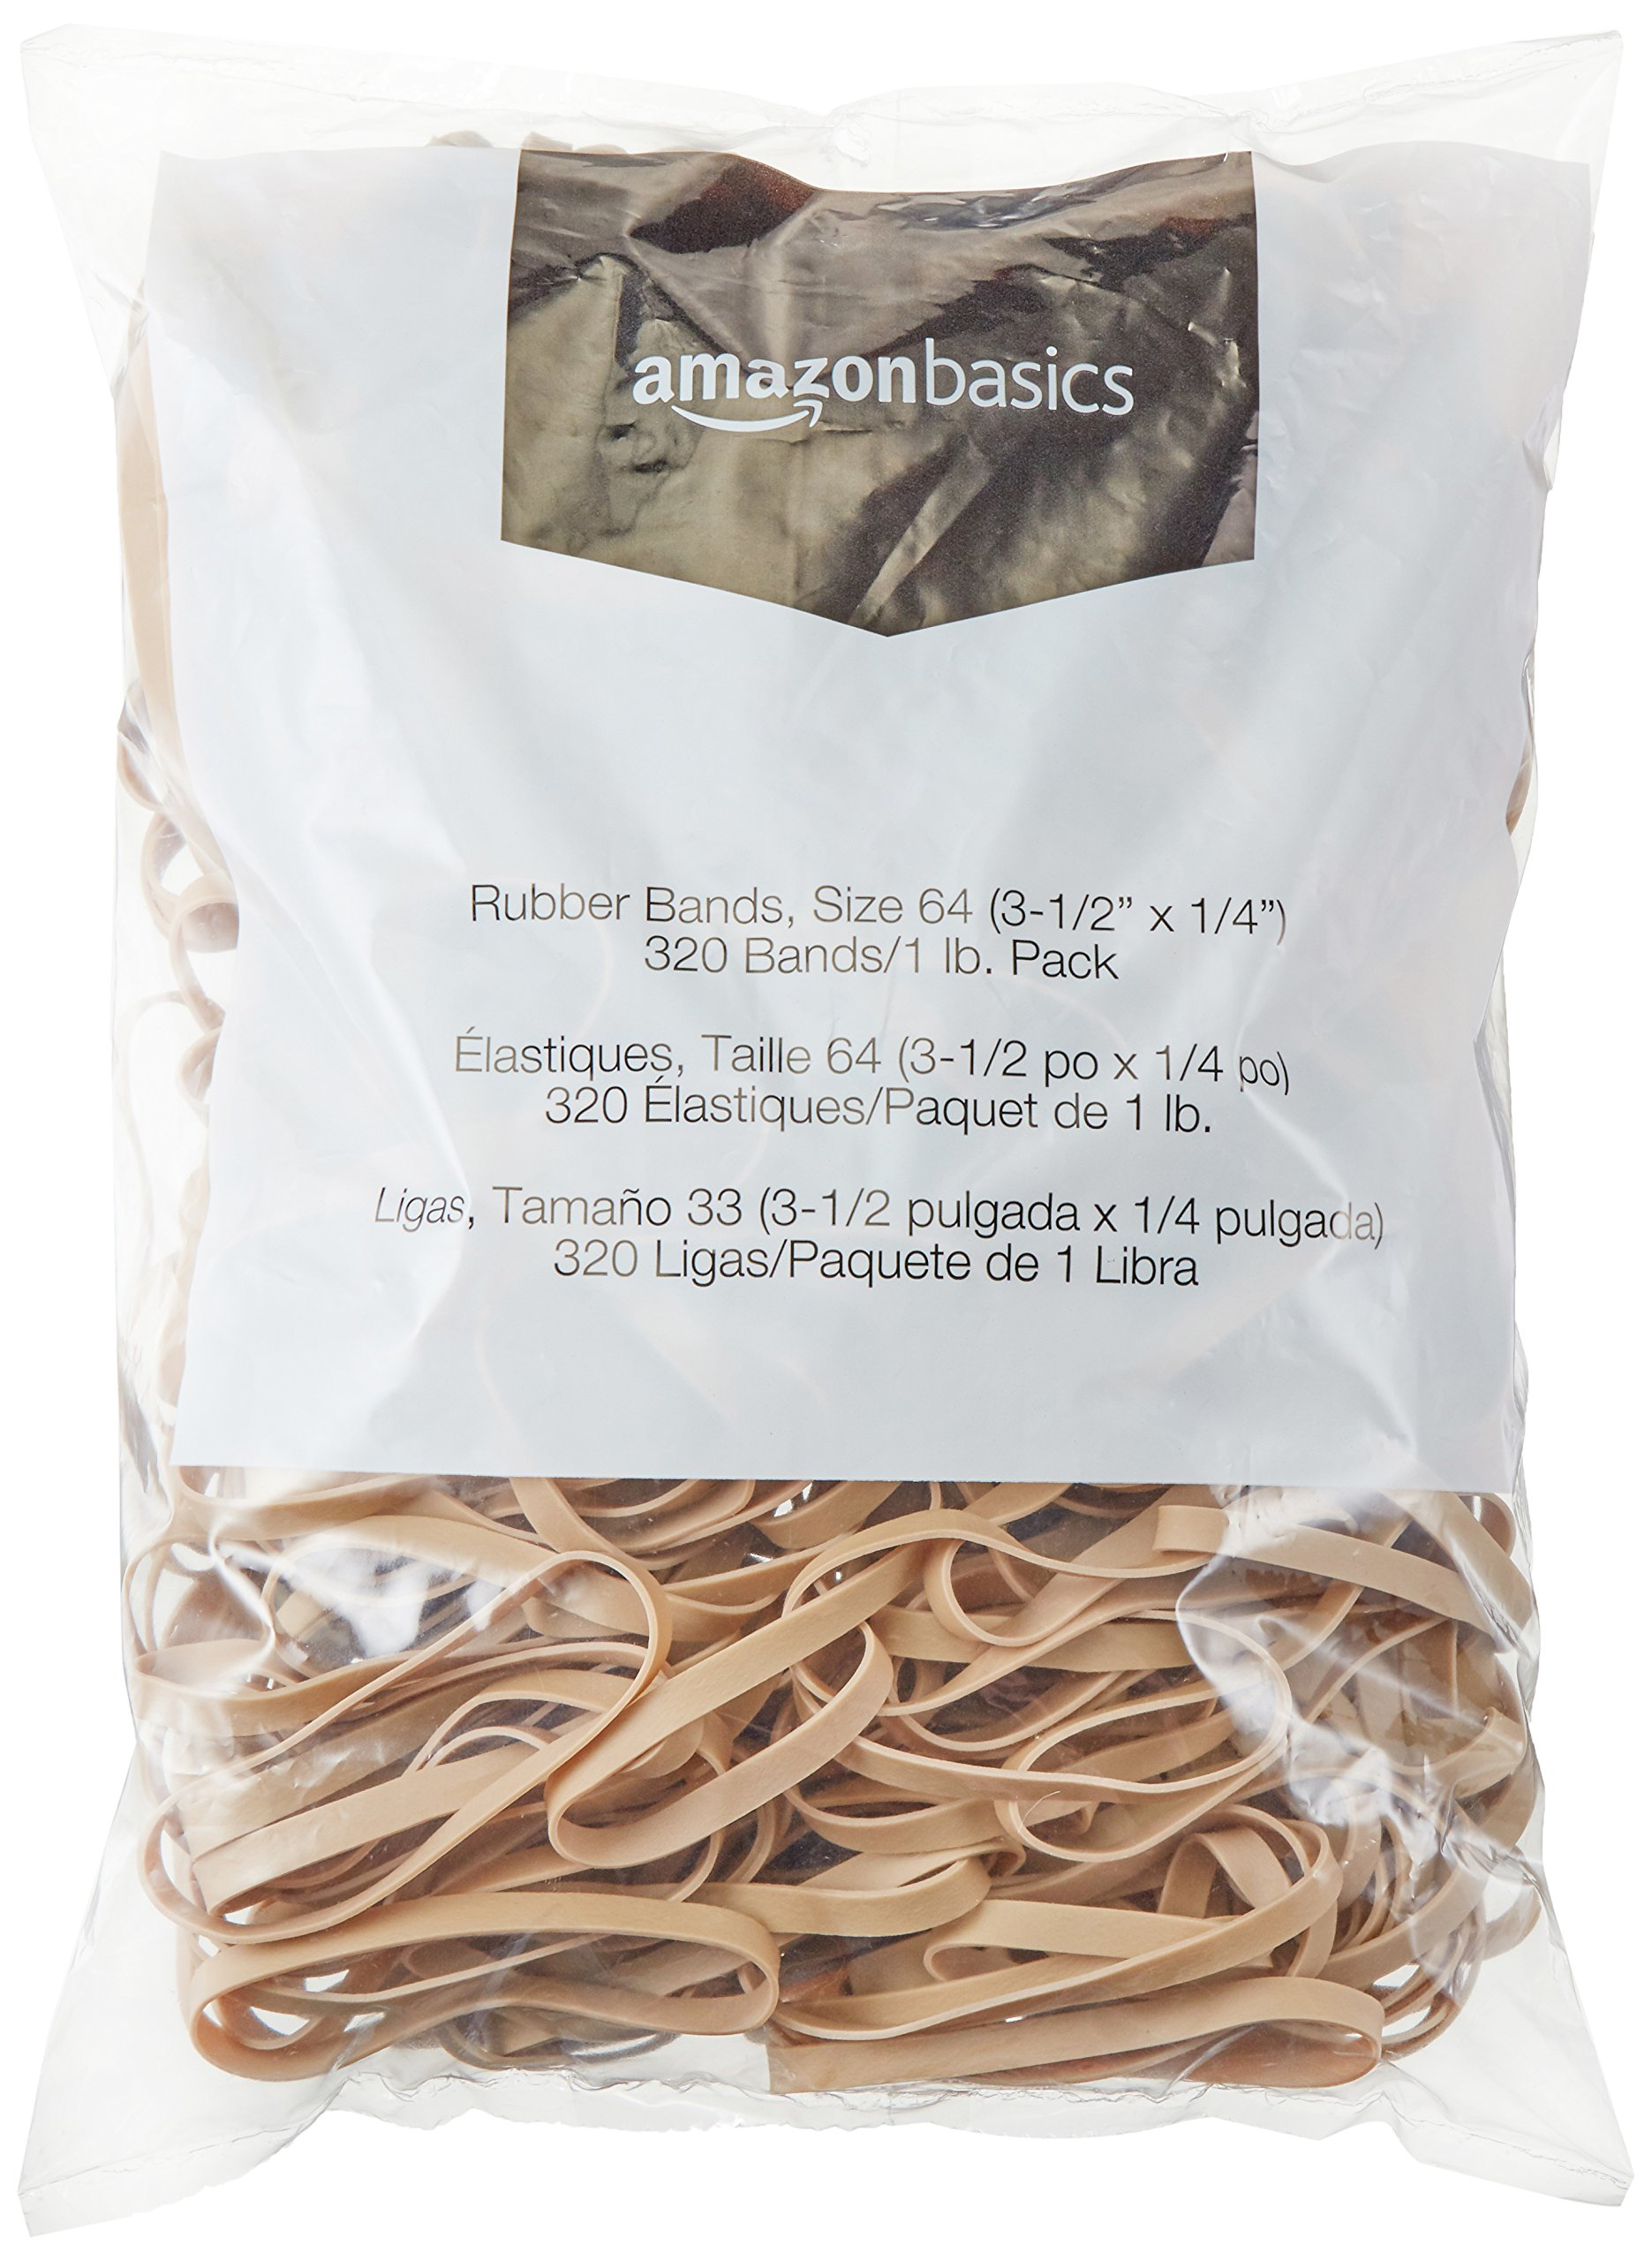 AmazonBasics Rubber Bands, Size 64 (3-1/2'' x 1/4''), 320 Bands/1 lb. Pack, 3-Pack